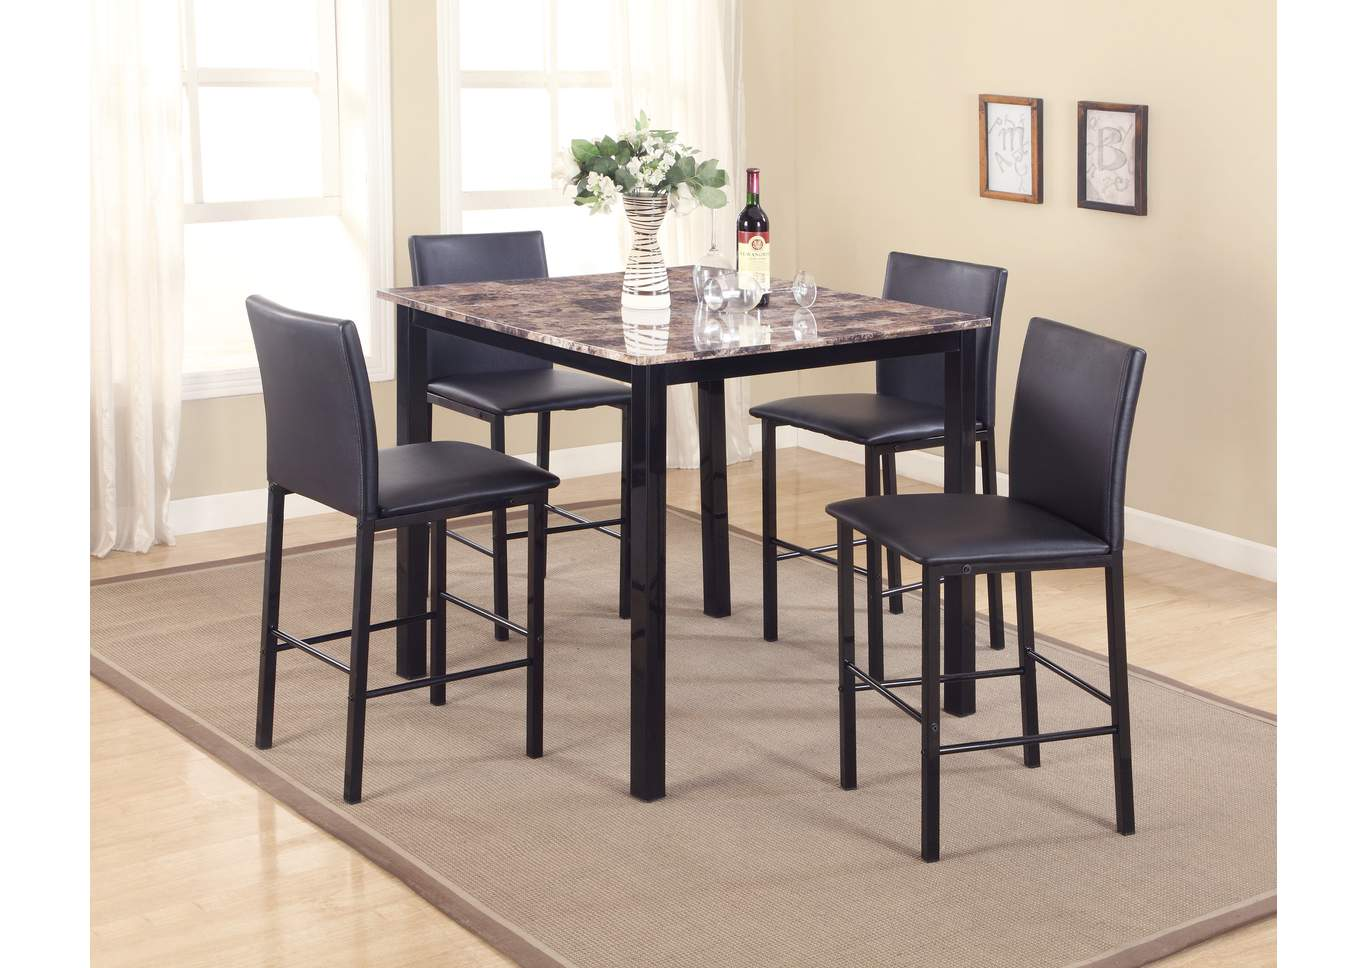 Meyers & Tabakin Inc Aiden Counter Height Dining Room Table w/4 ...